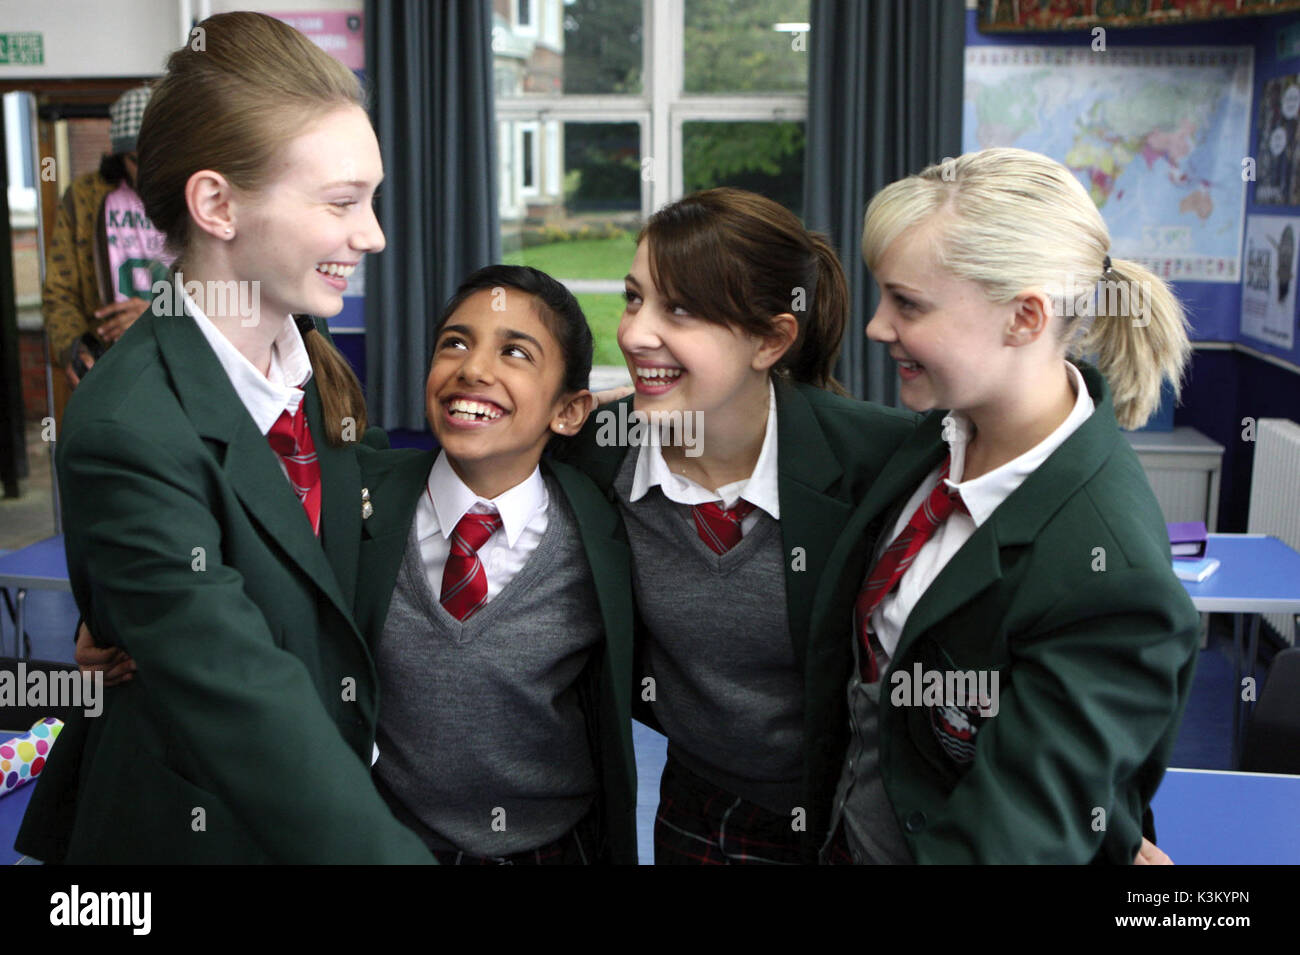 Angus Thongs And Perfect Snogging Cast georgia henshaw stock photos & georgia henshaw stock images